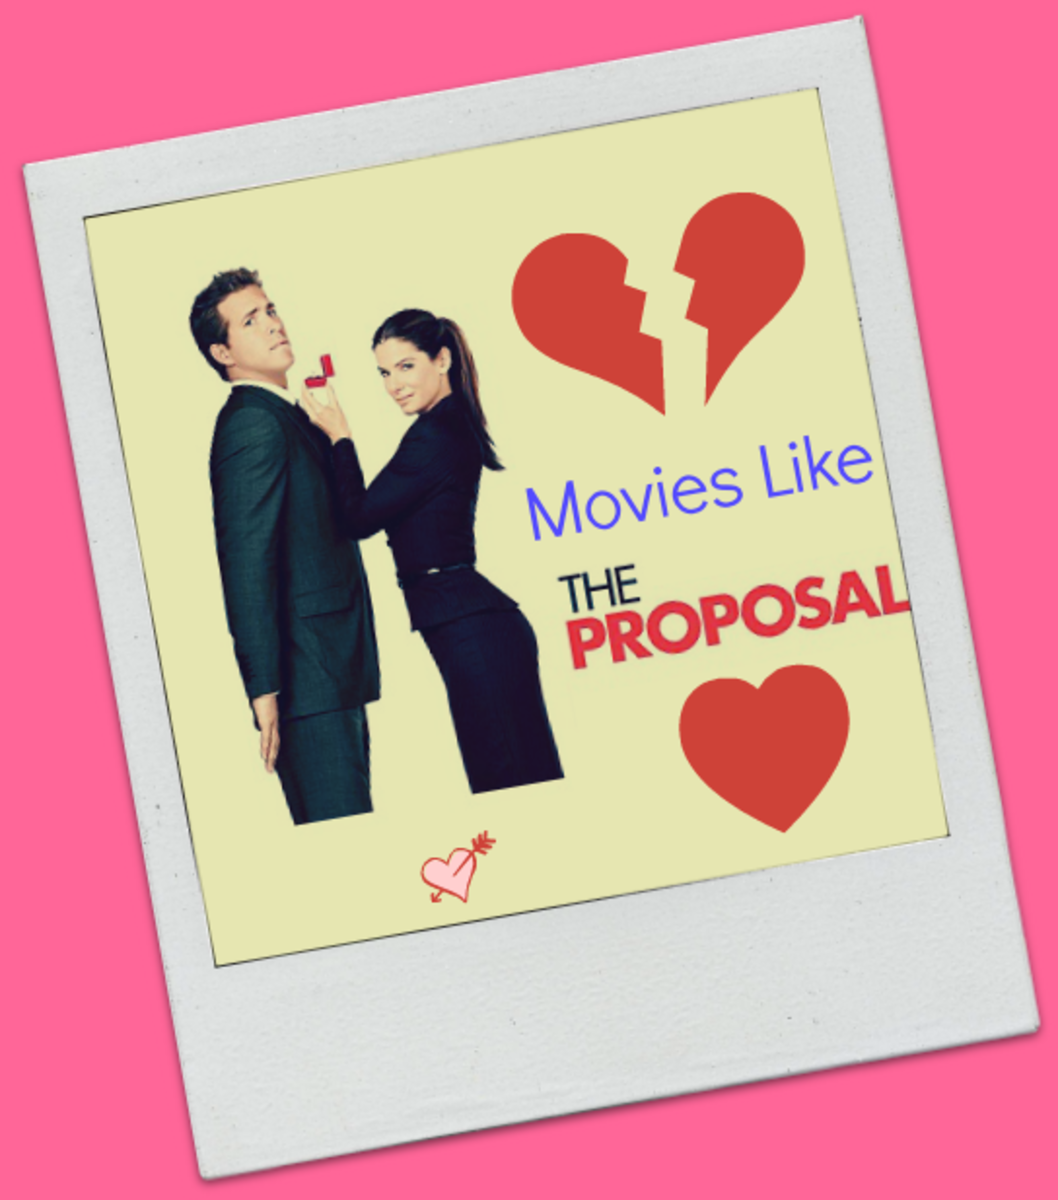 7 Movies Like The Proposal - Movie Recommendations